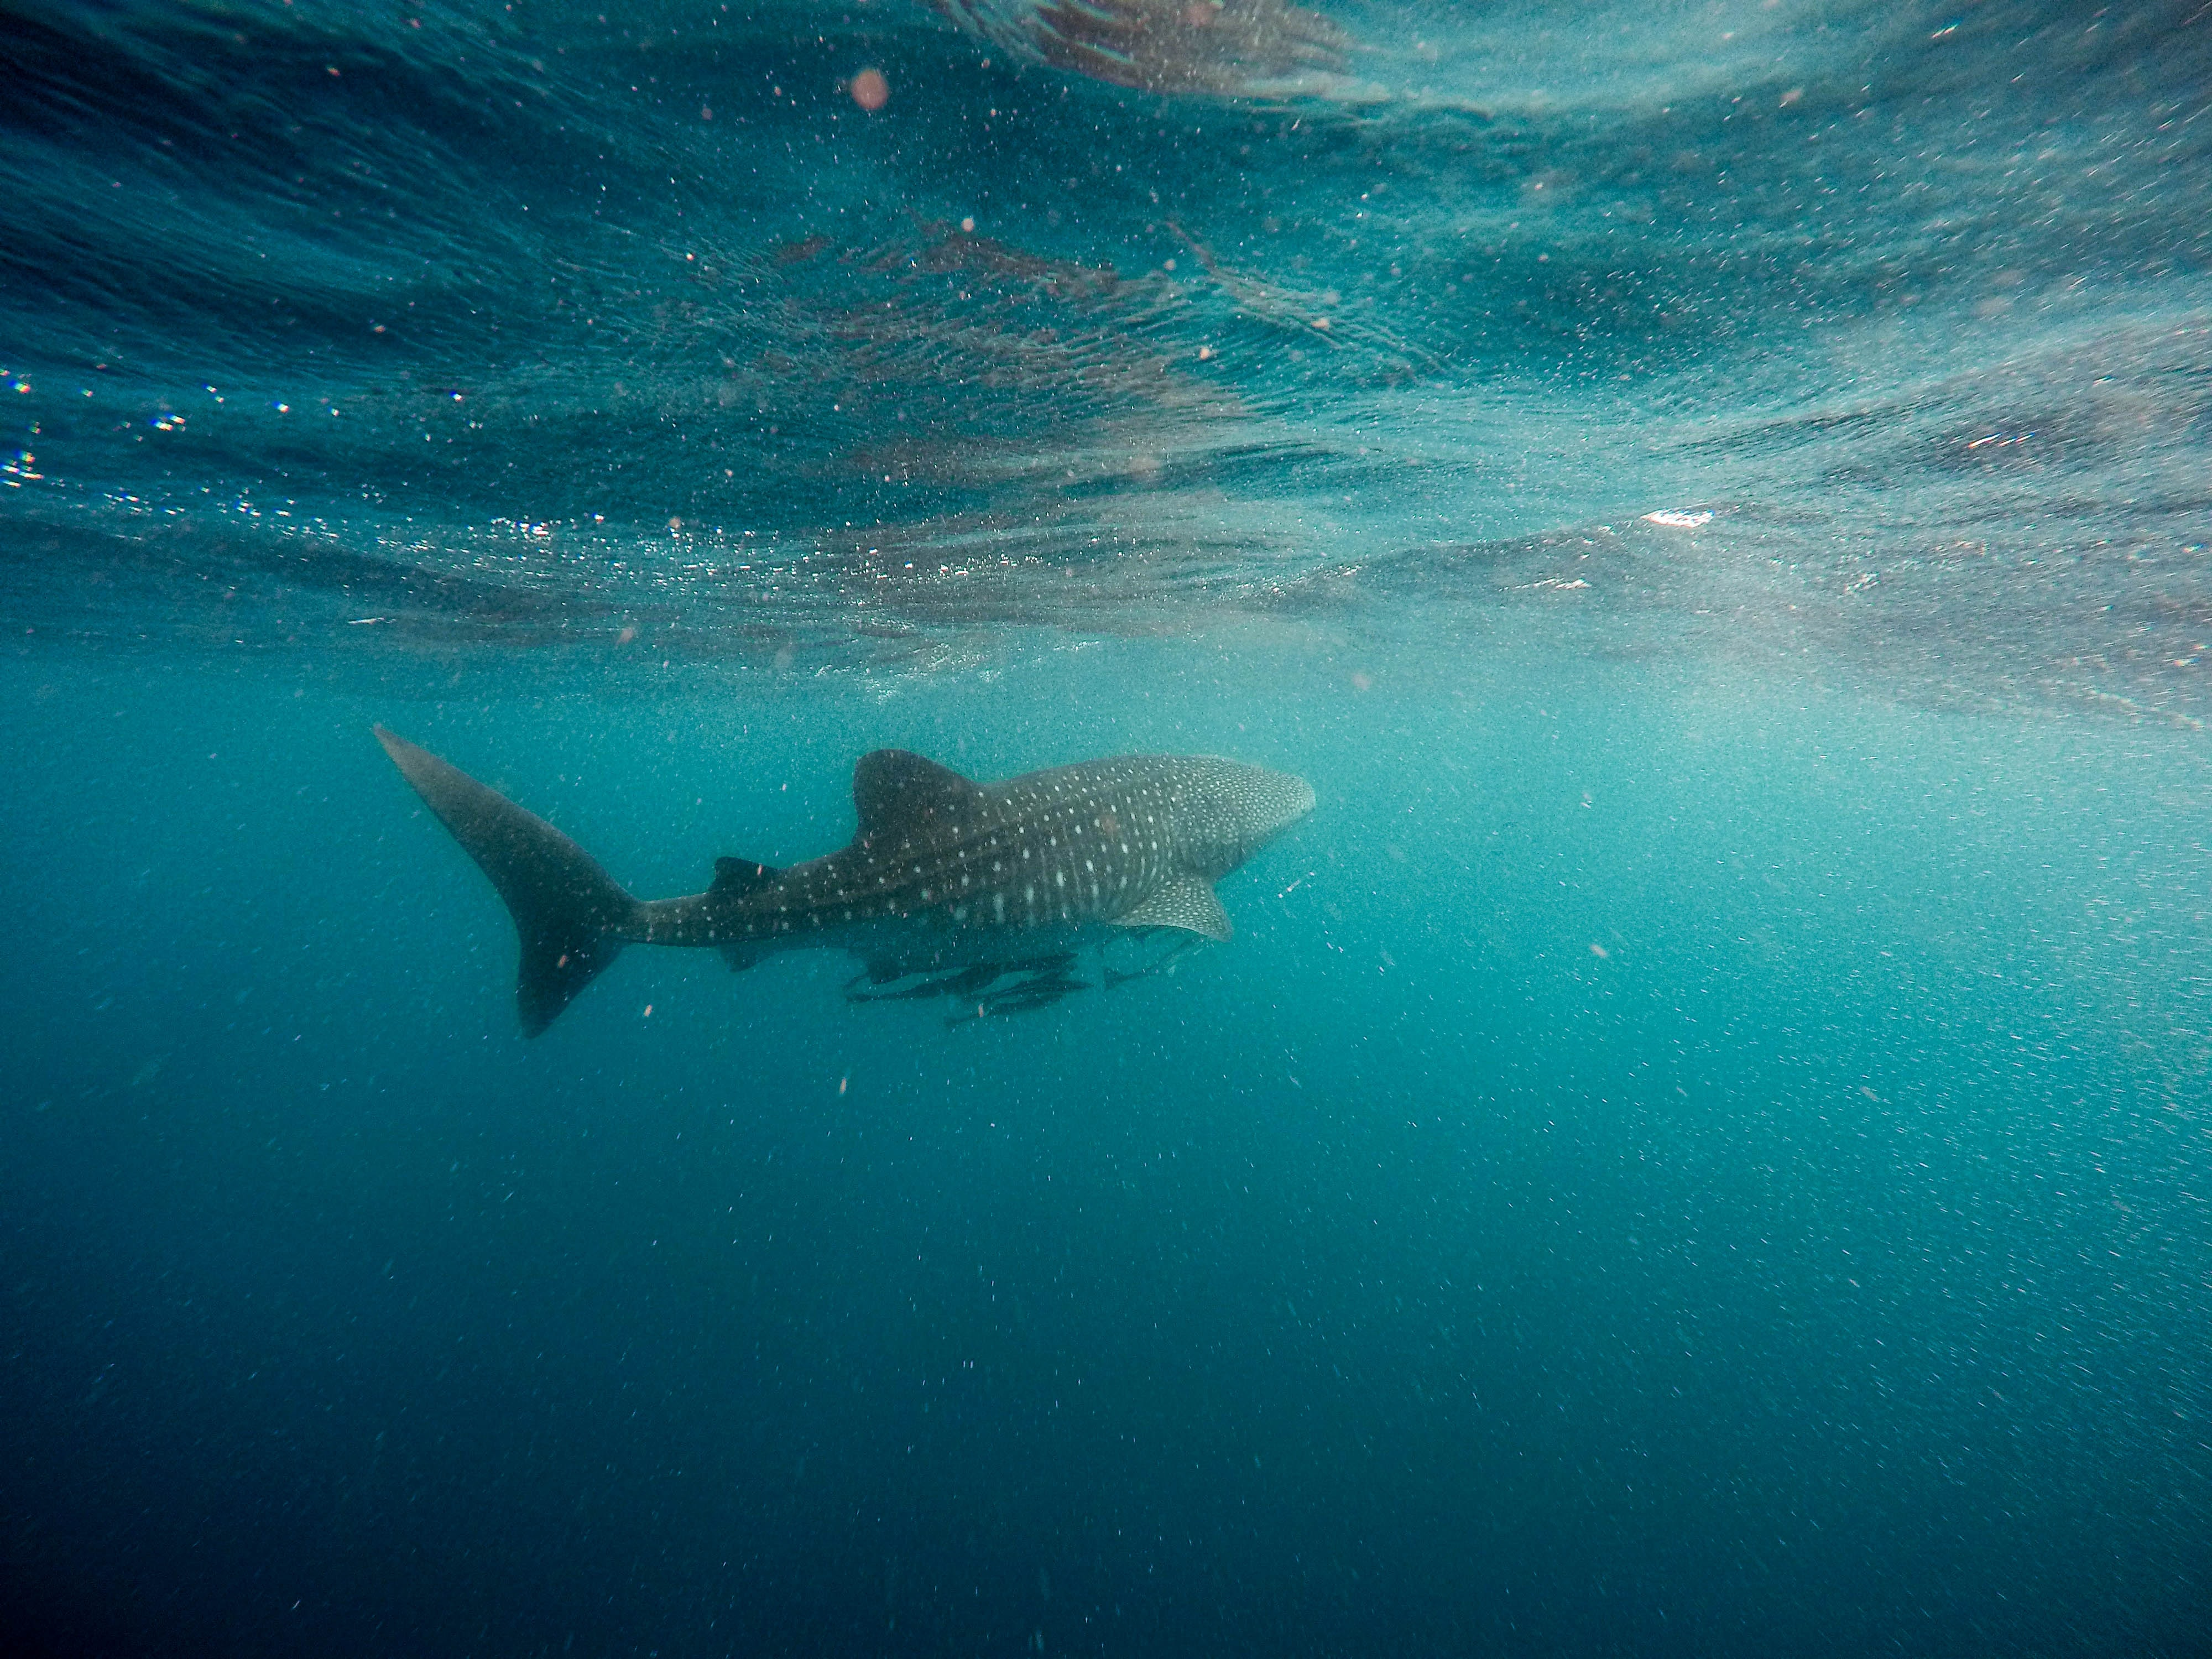 whale shark swimming underwater